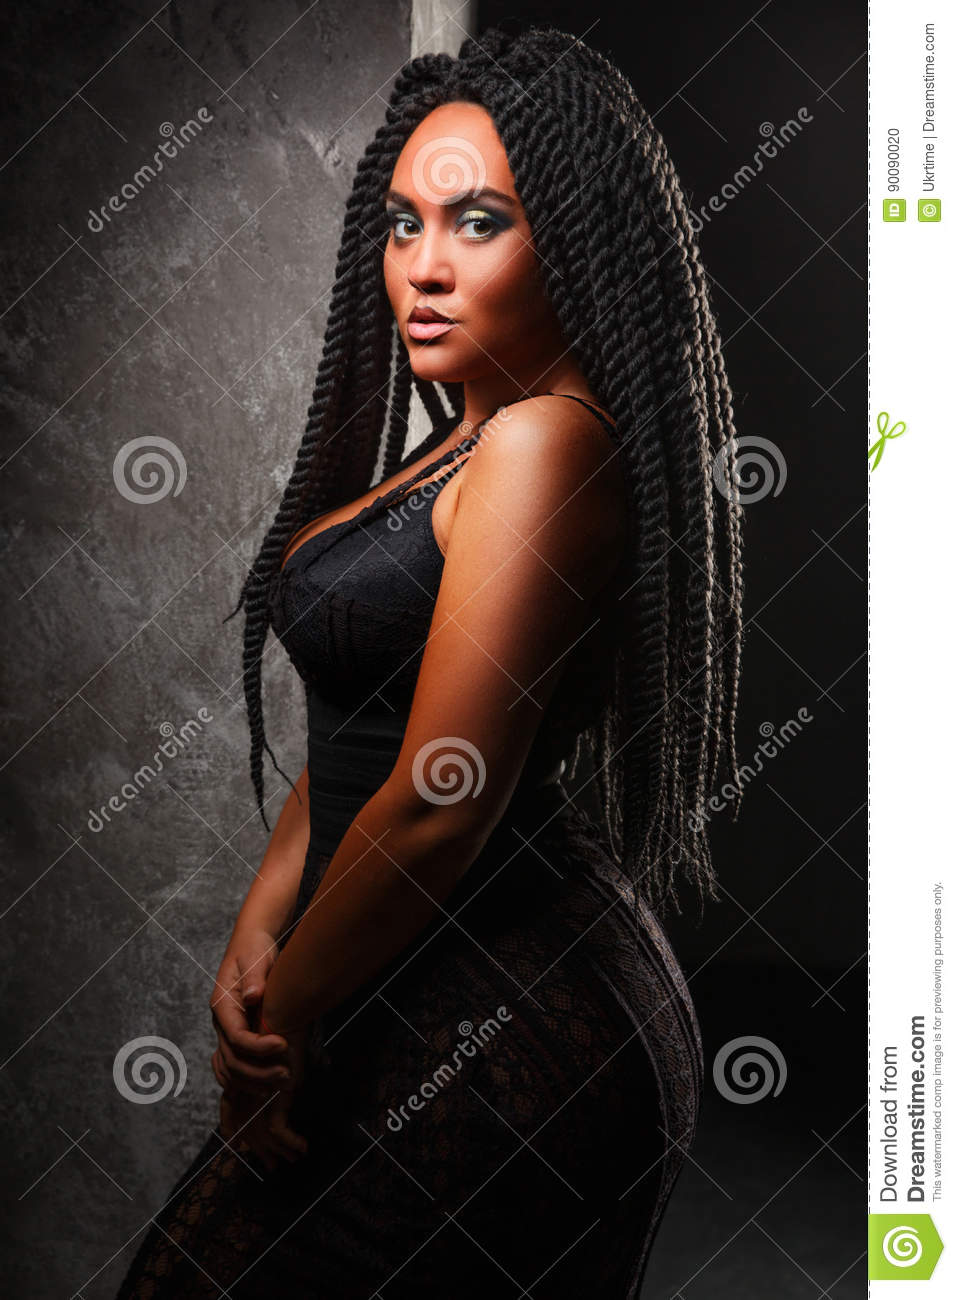 Una Ragazza In Un Corsetto Nero Acconciatura Alla Moda Dreadlocks